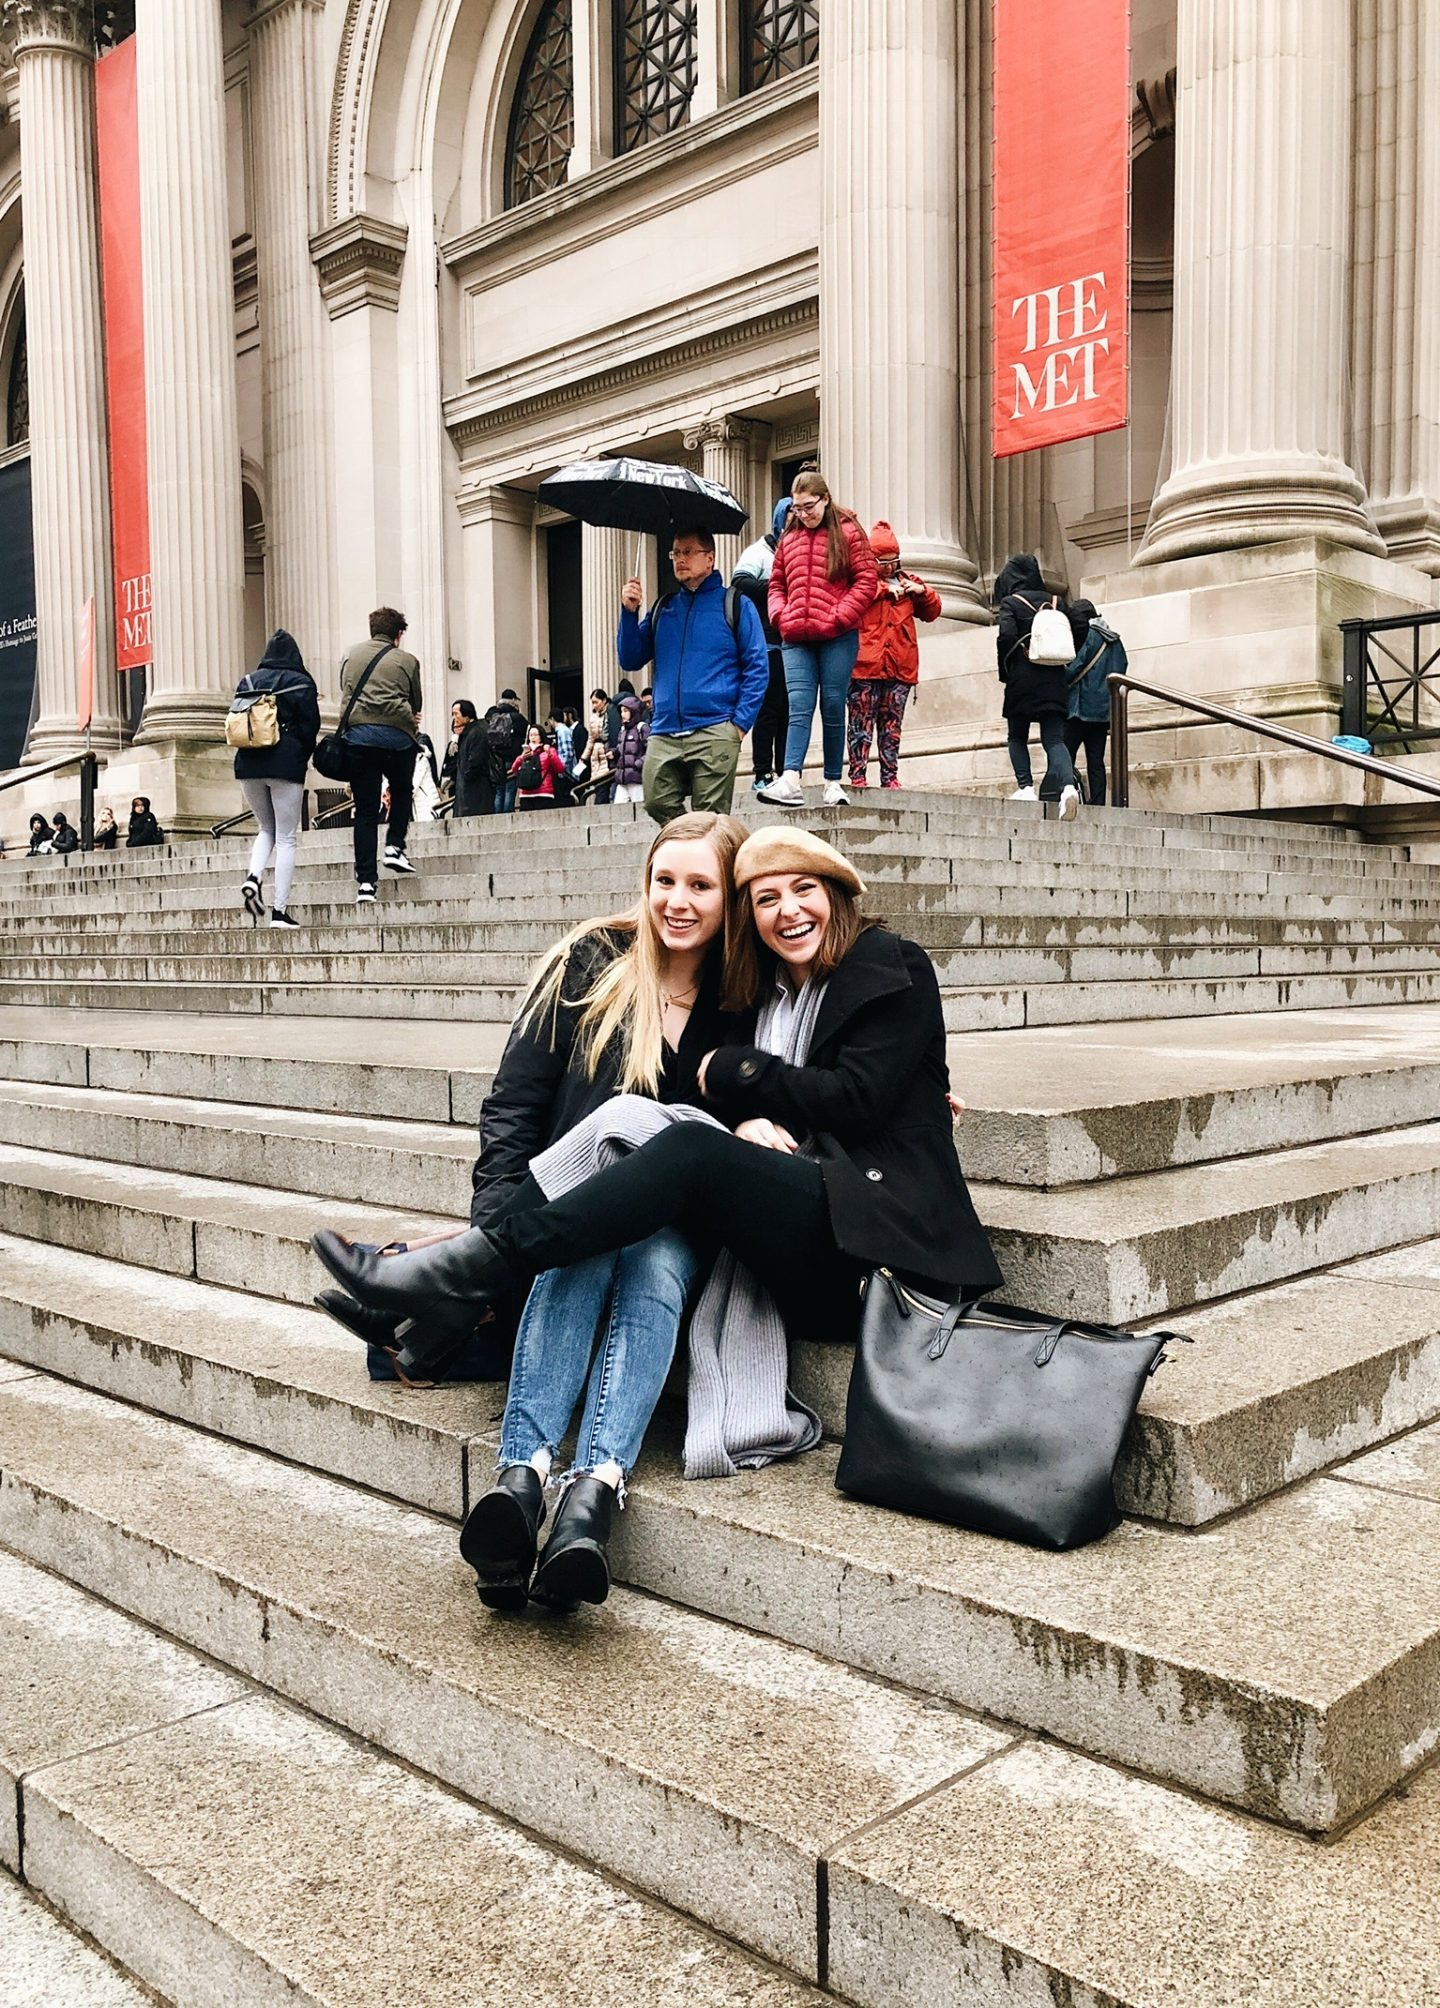 Sitting on the MET stairs with Irina in New York City!